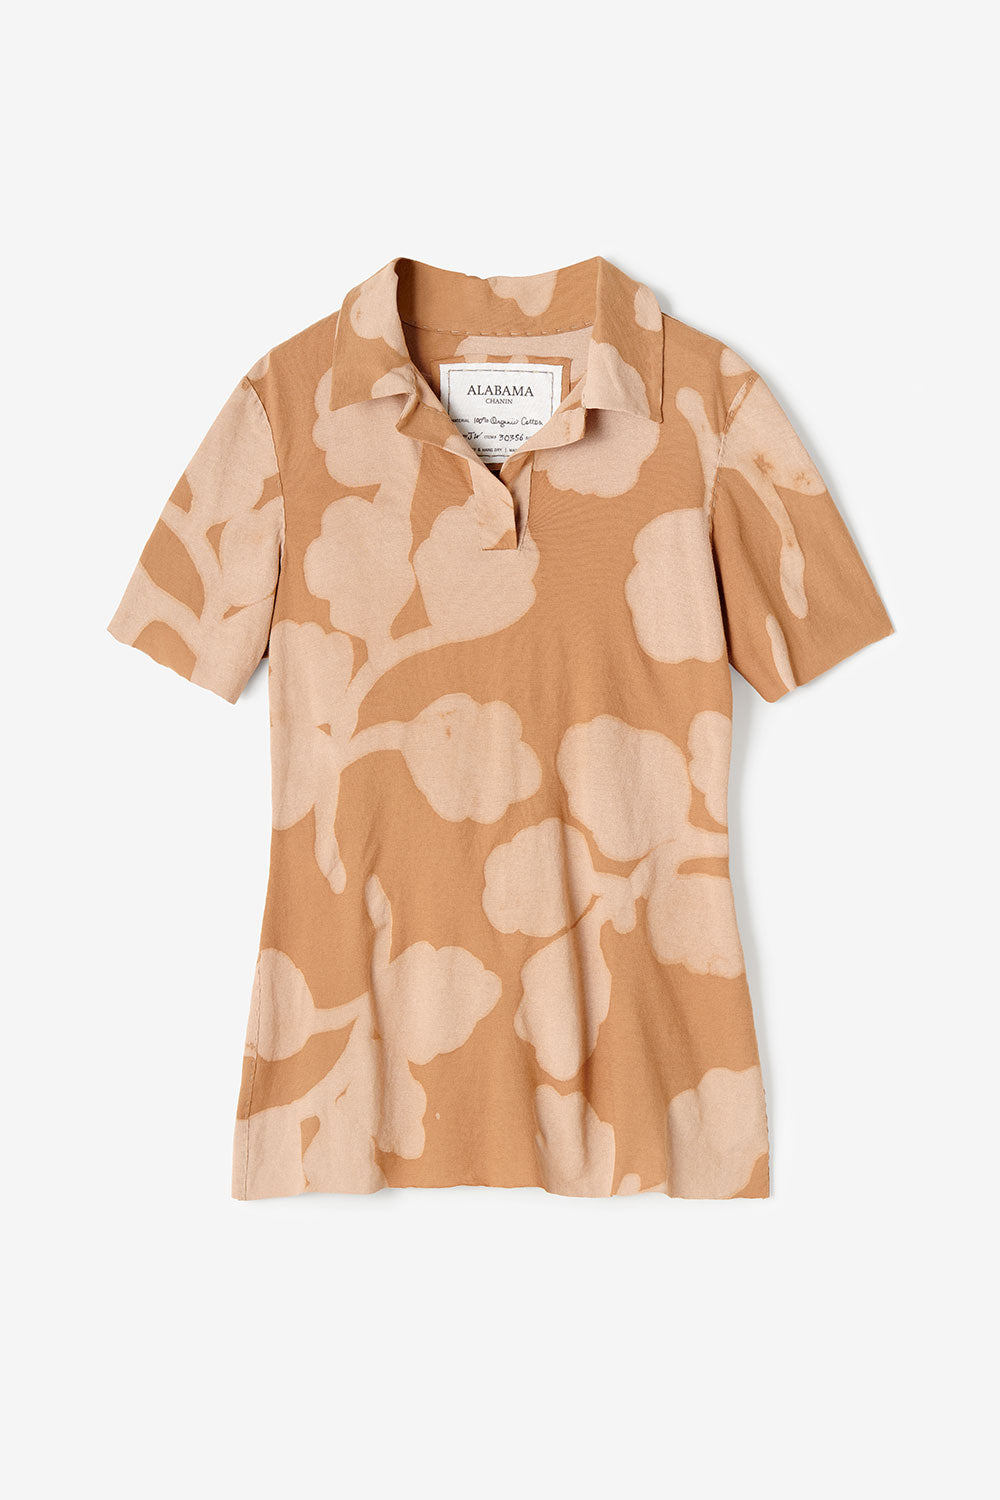 Alabama Chanin Ripley Polo Women's Organic Cotton Polo Top in Camel Hand-Painted Leaves